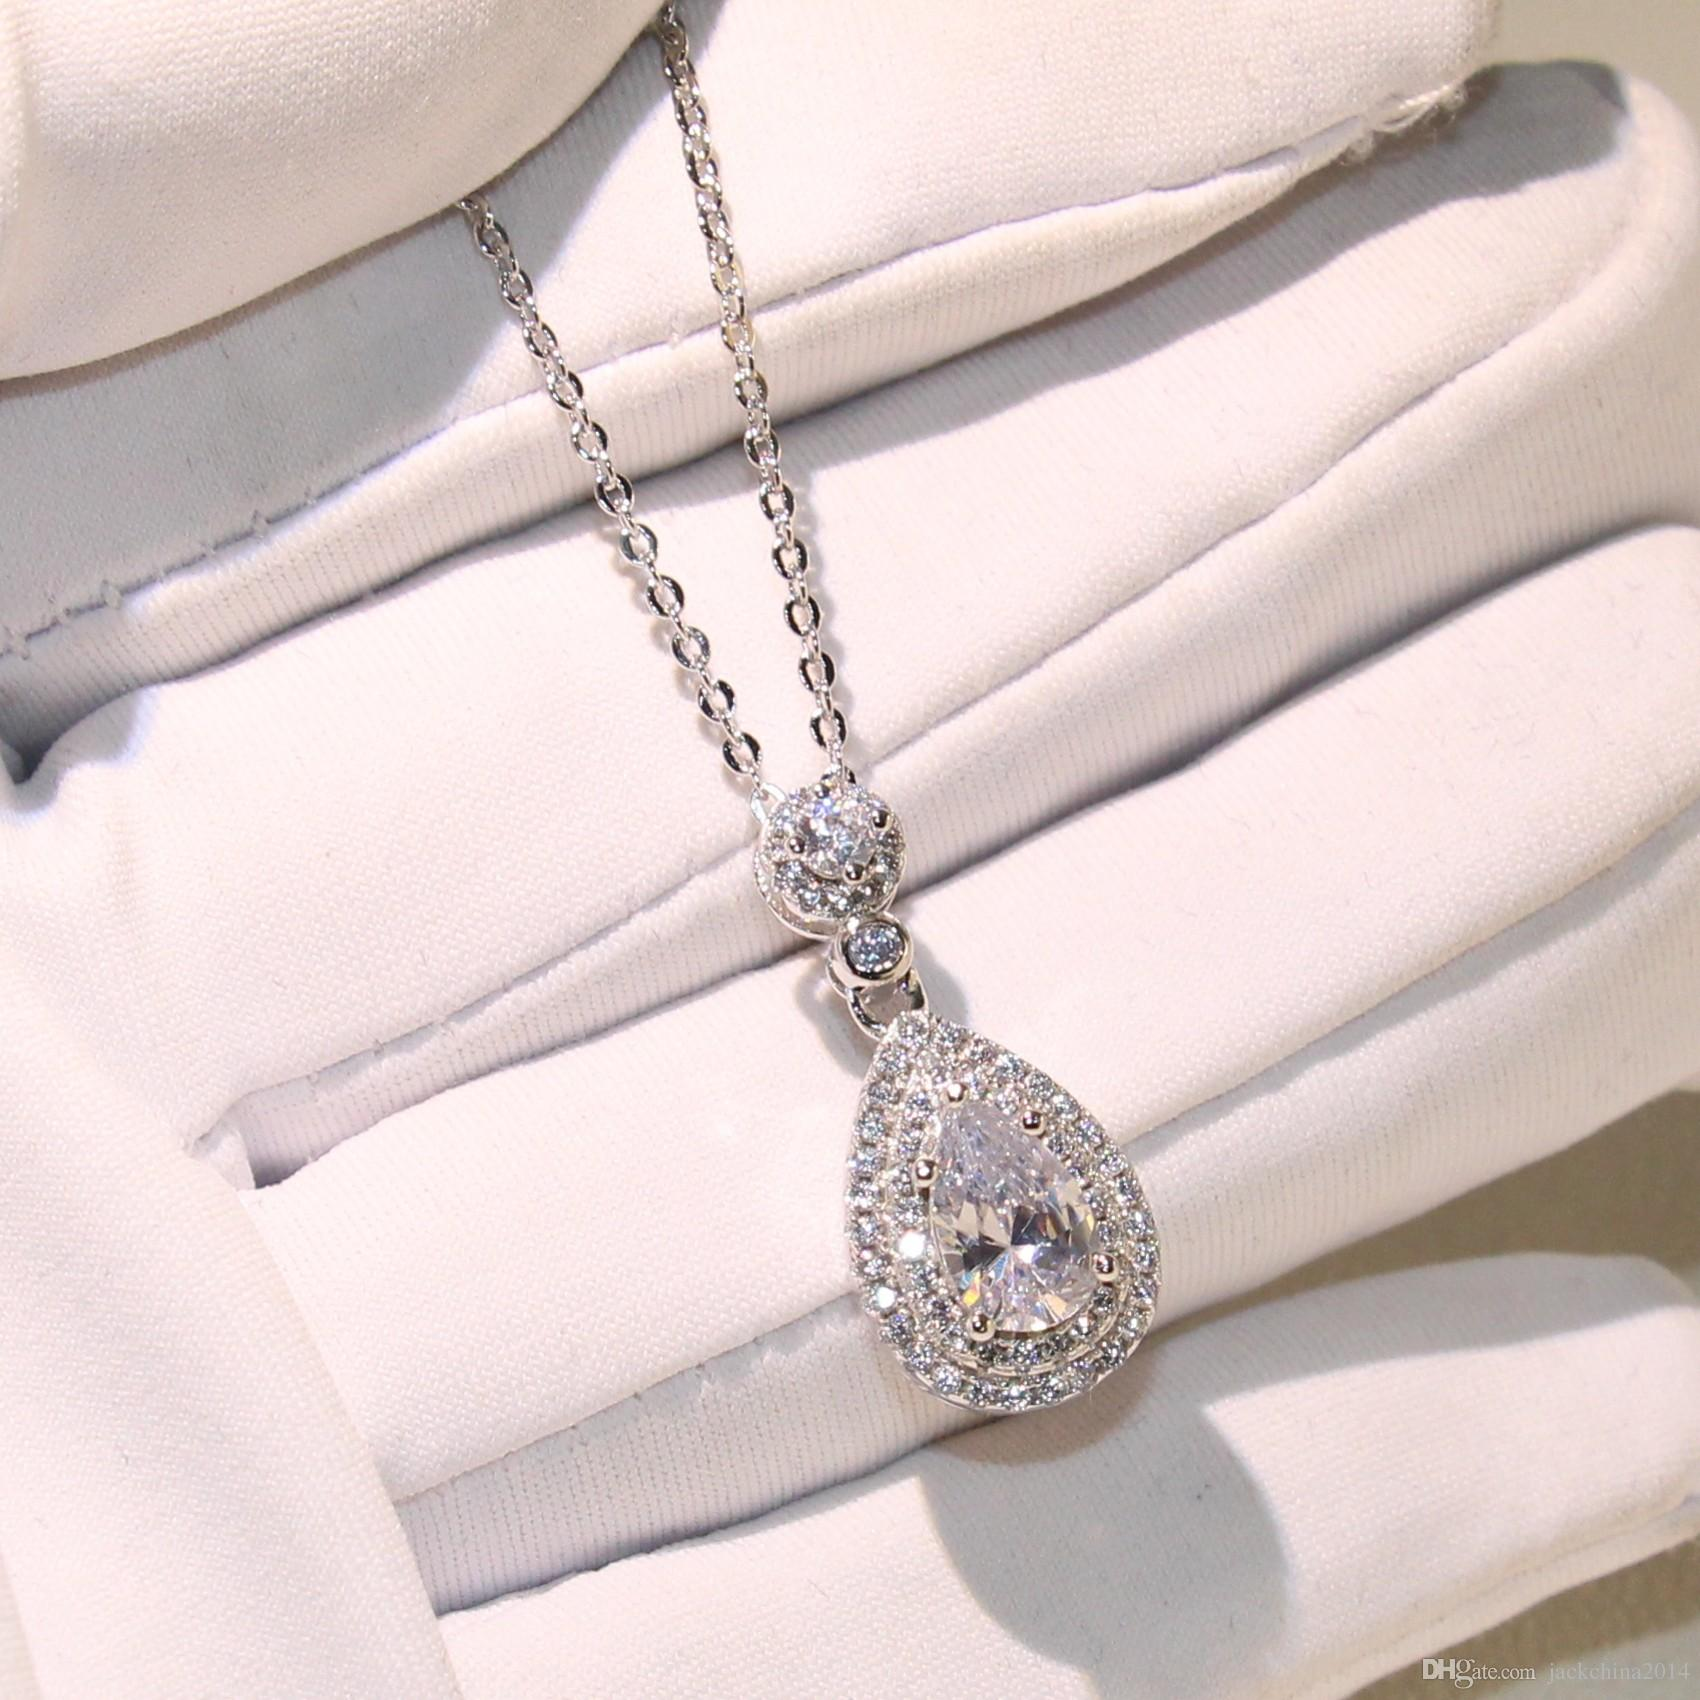 Top Selling Wholesale Professional Luxury Jewelry Water drop Necklace 925 Sterling Silver Pear Shape Topaz CZ Diamond Pendant For Women Gift